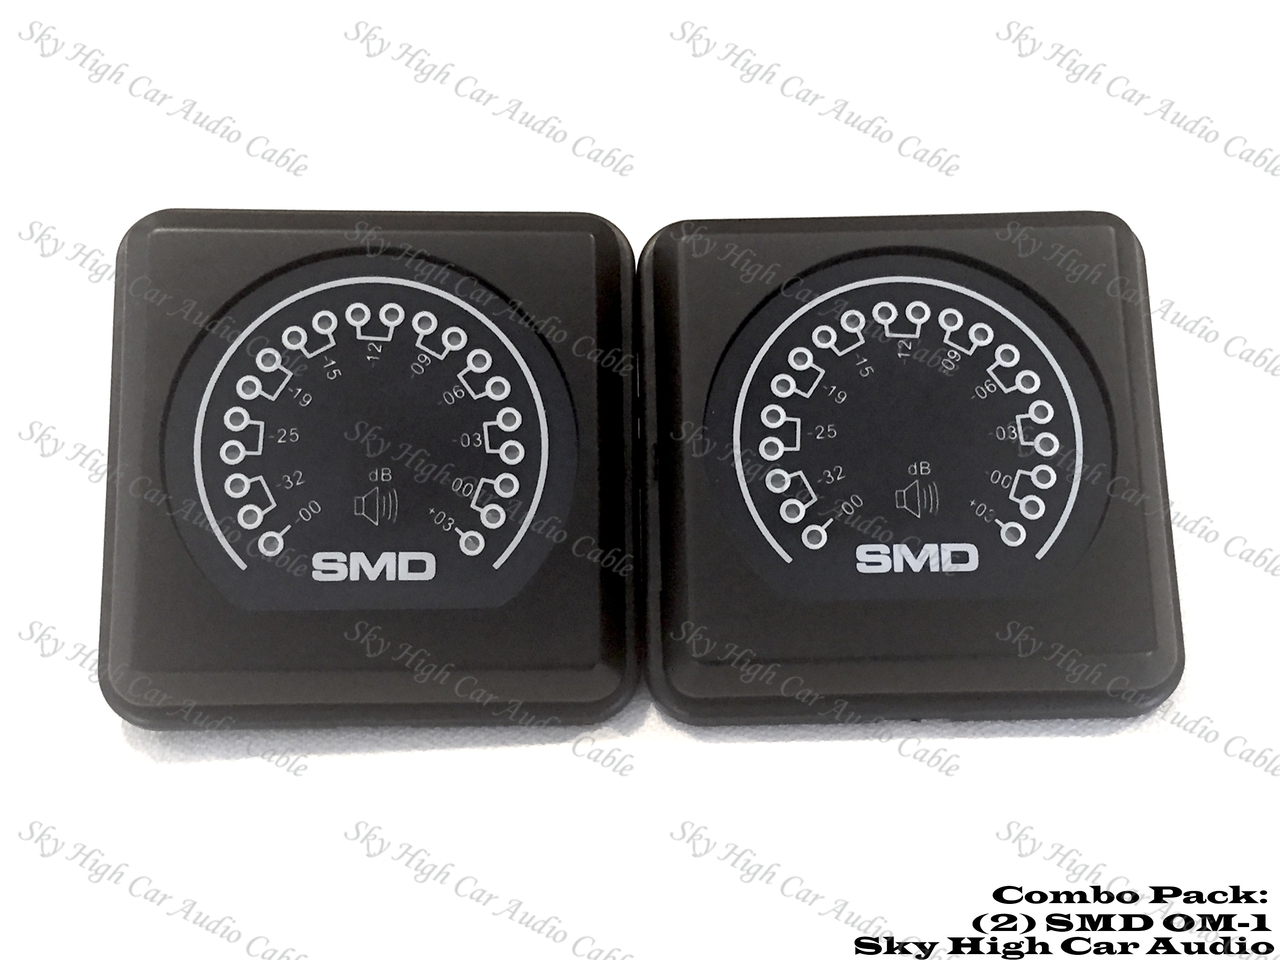 (2) SMD OM-1 COMBO PACKLED Amplifier Output METER